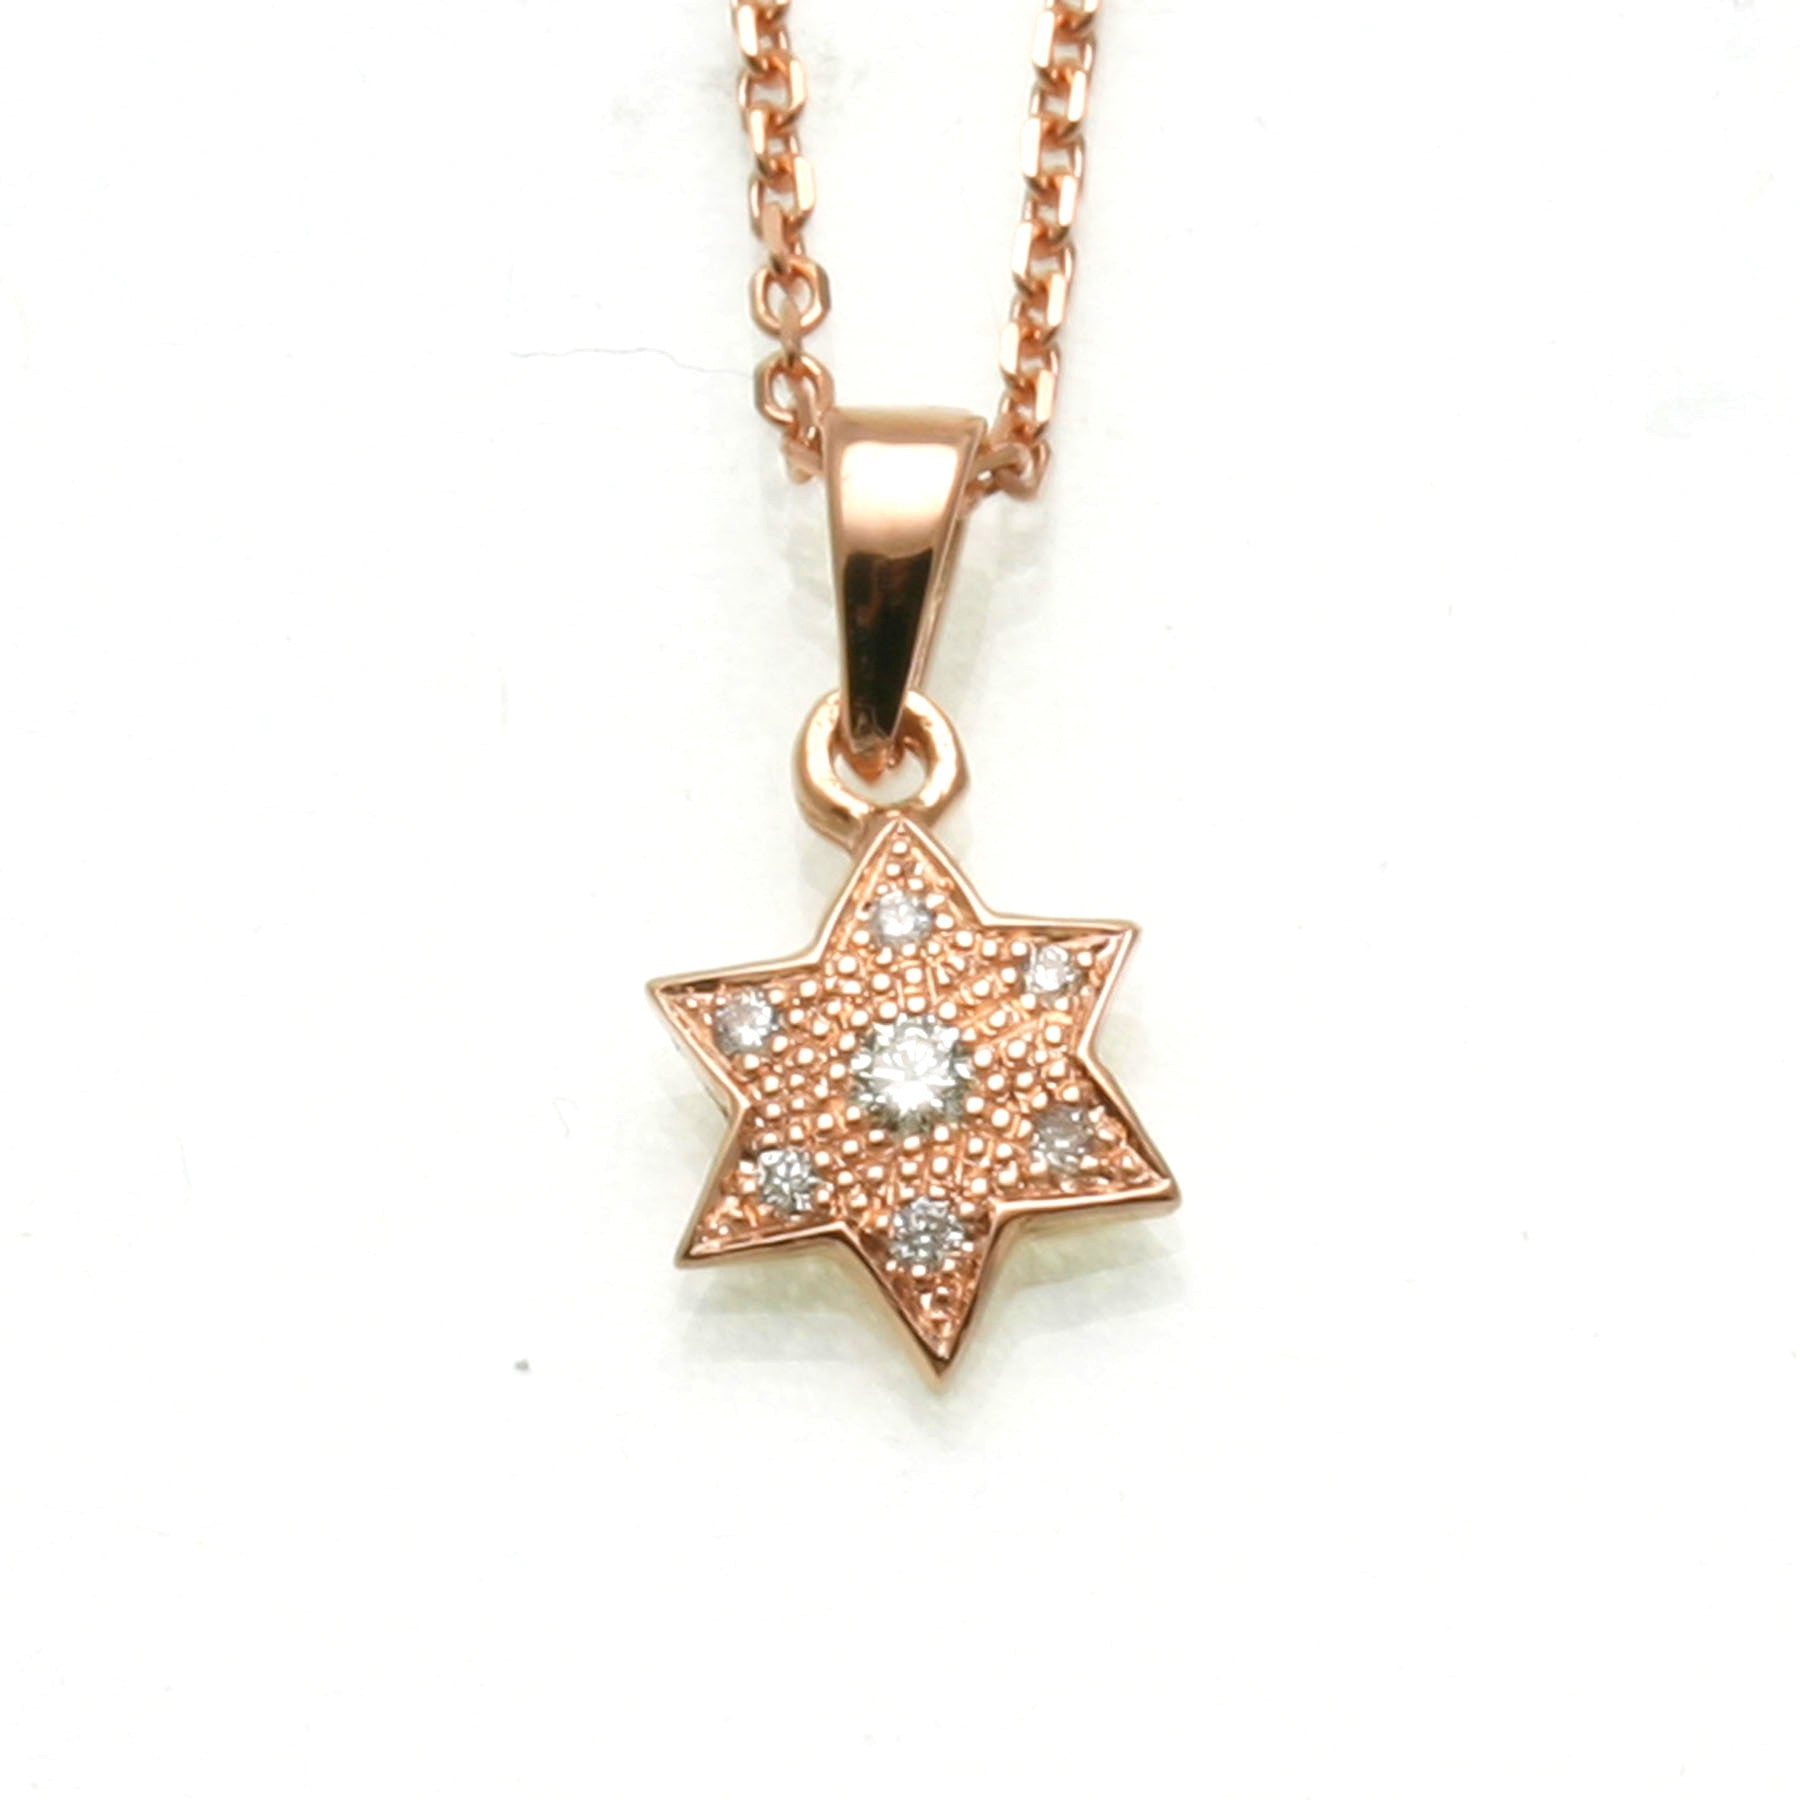 Star of david jewish jewelry jewelryjudaica 14k rose gold diamond star of david pendant small pave necklace jewelryjudaica buycottarizona Image collections